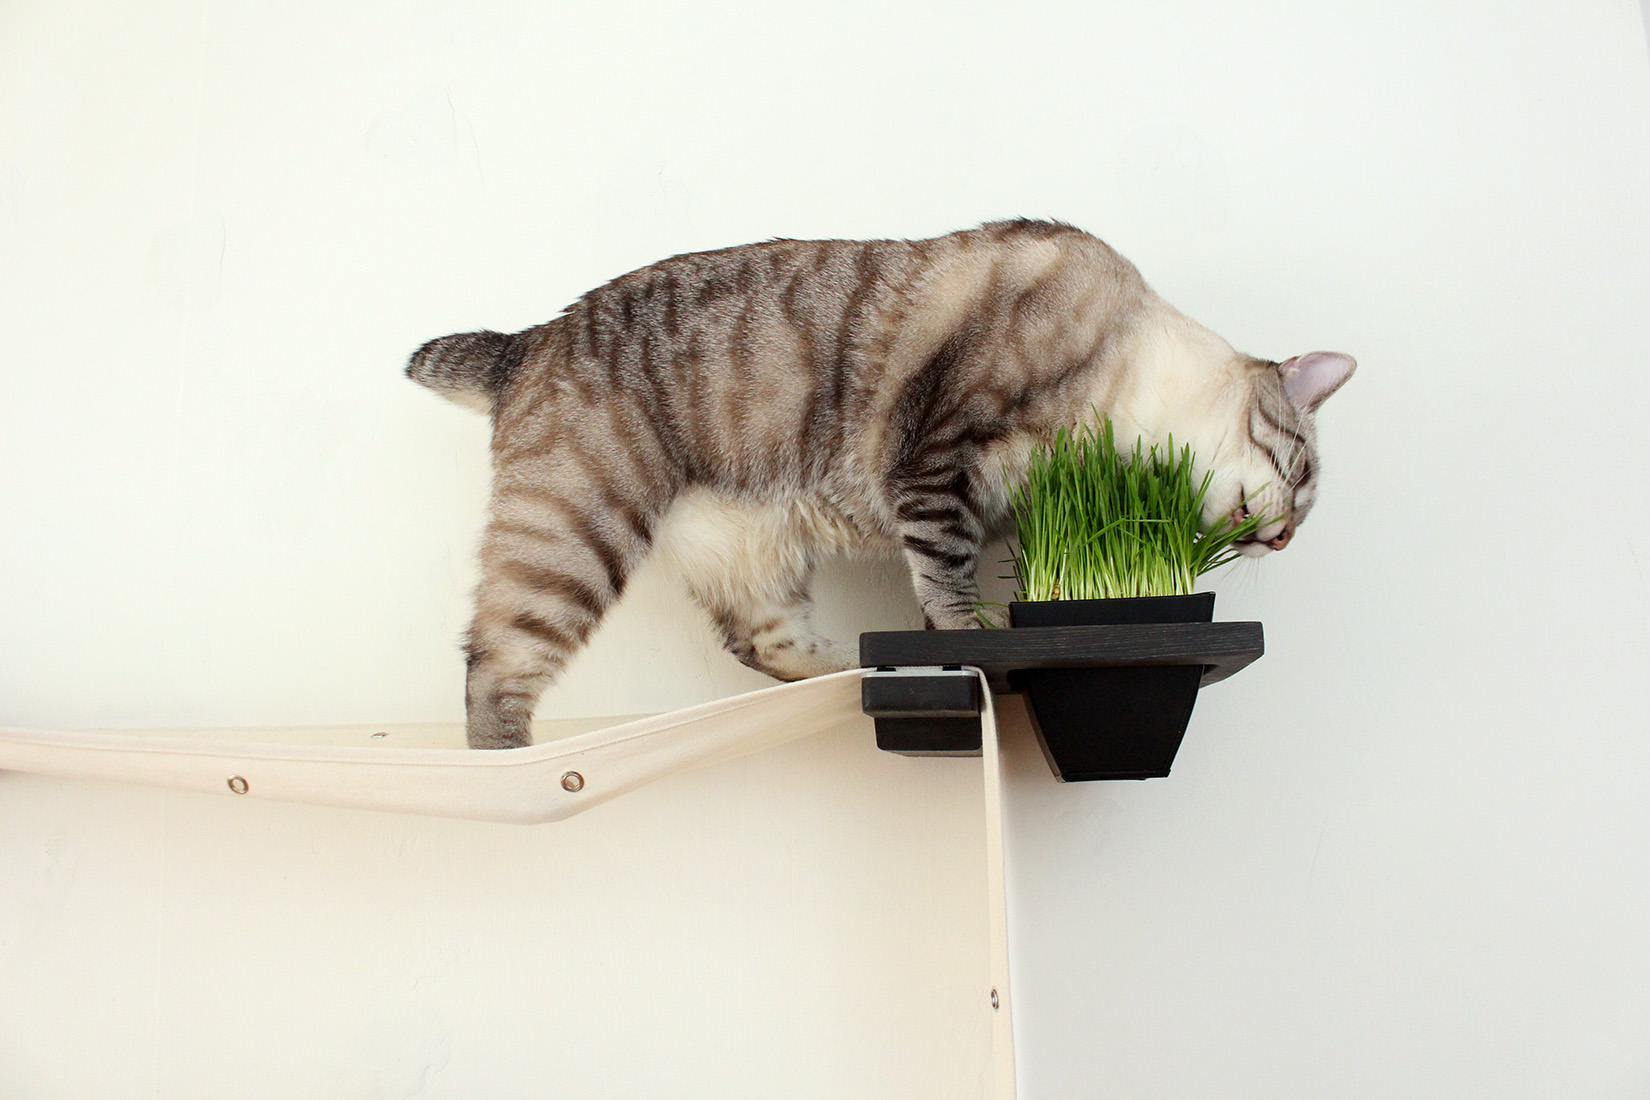 The Cat Mod - Planter ⋆ Catastrophic Creations